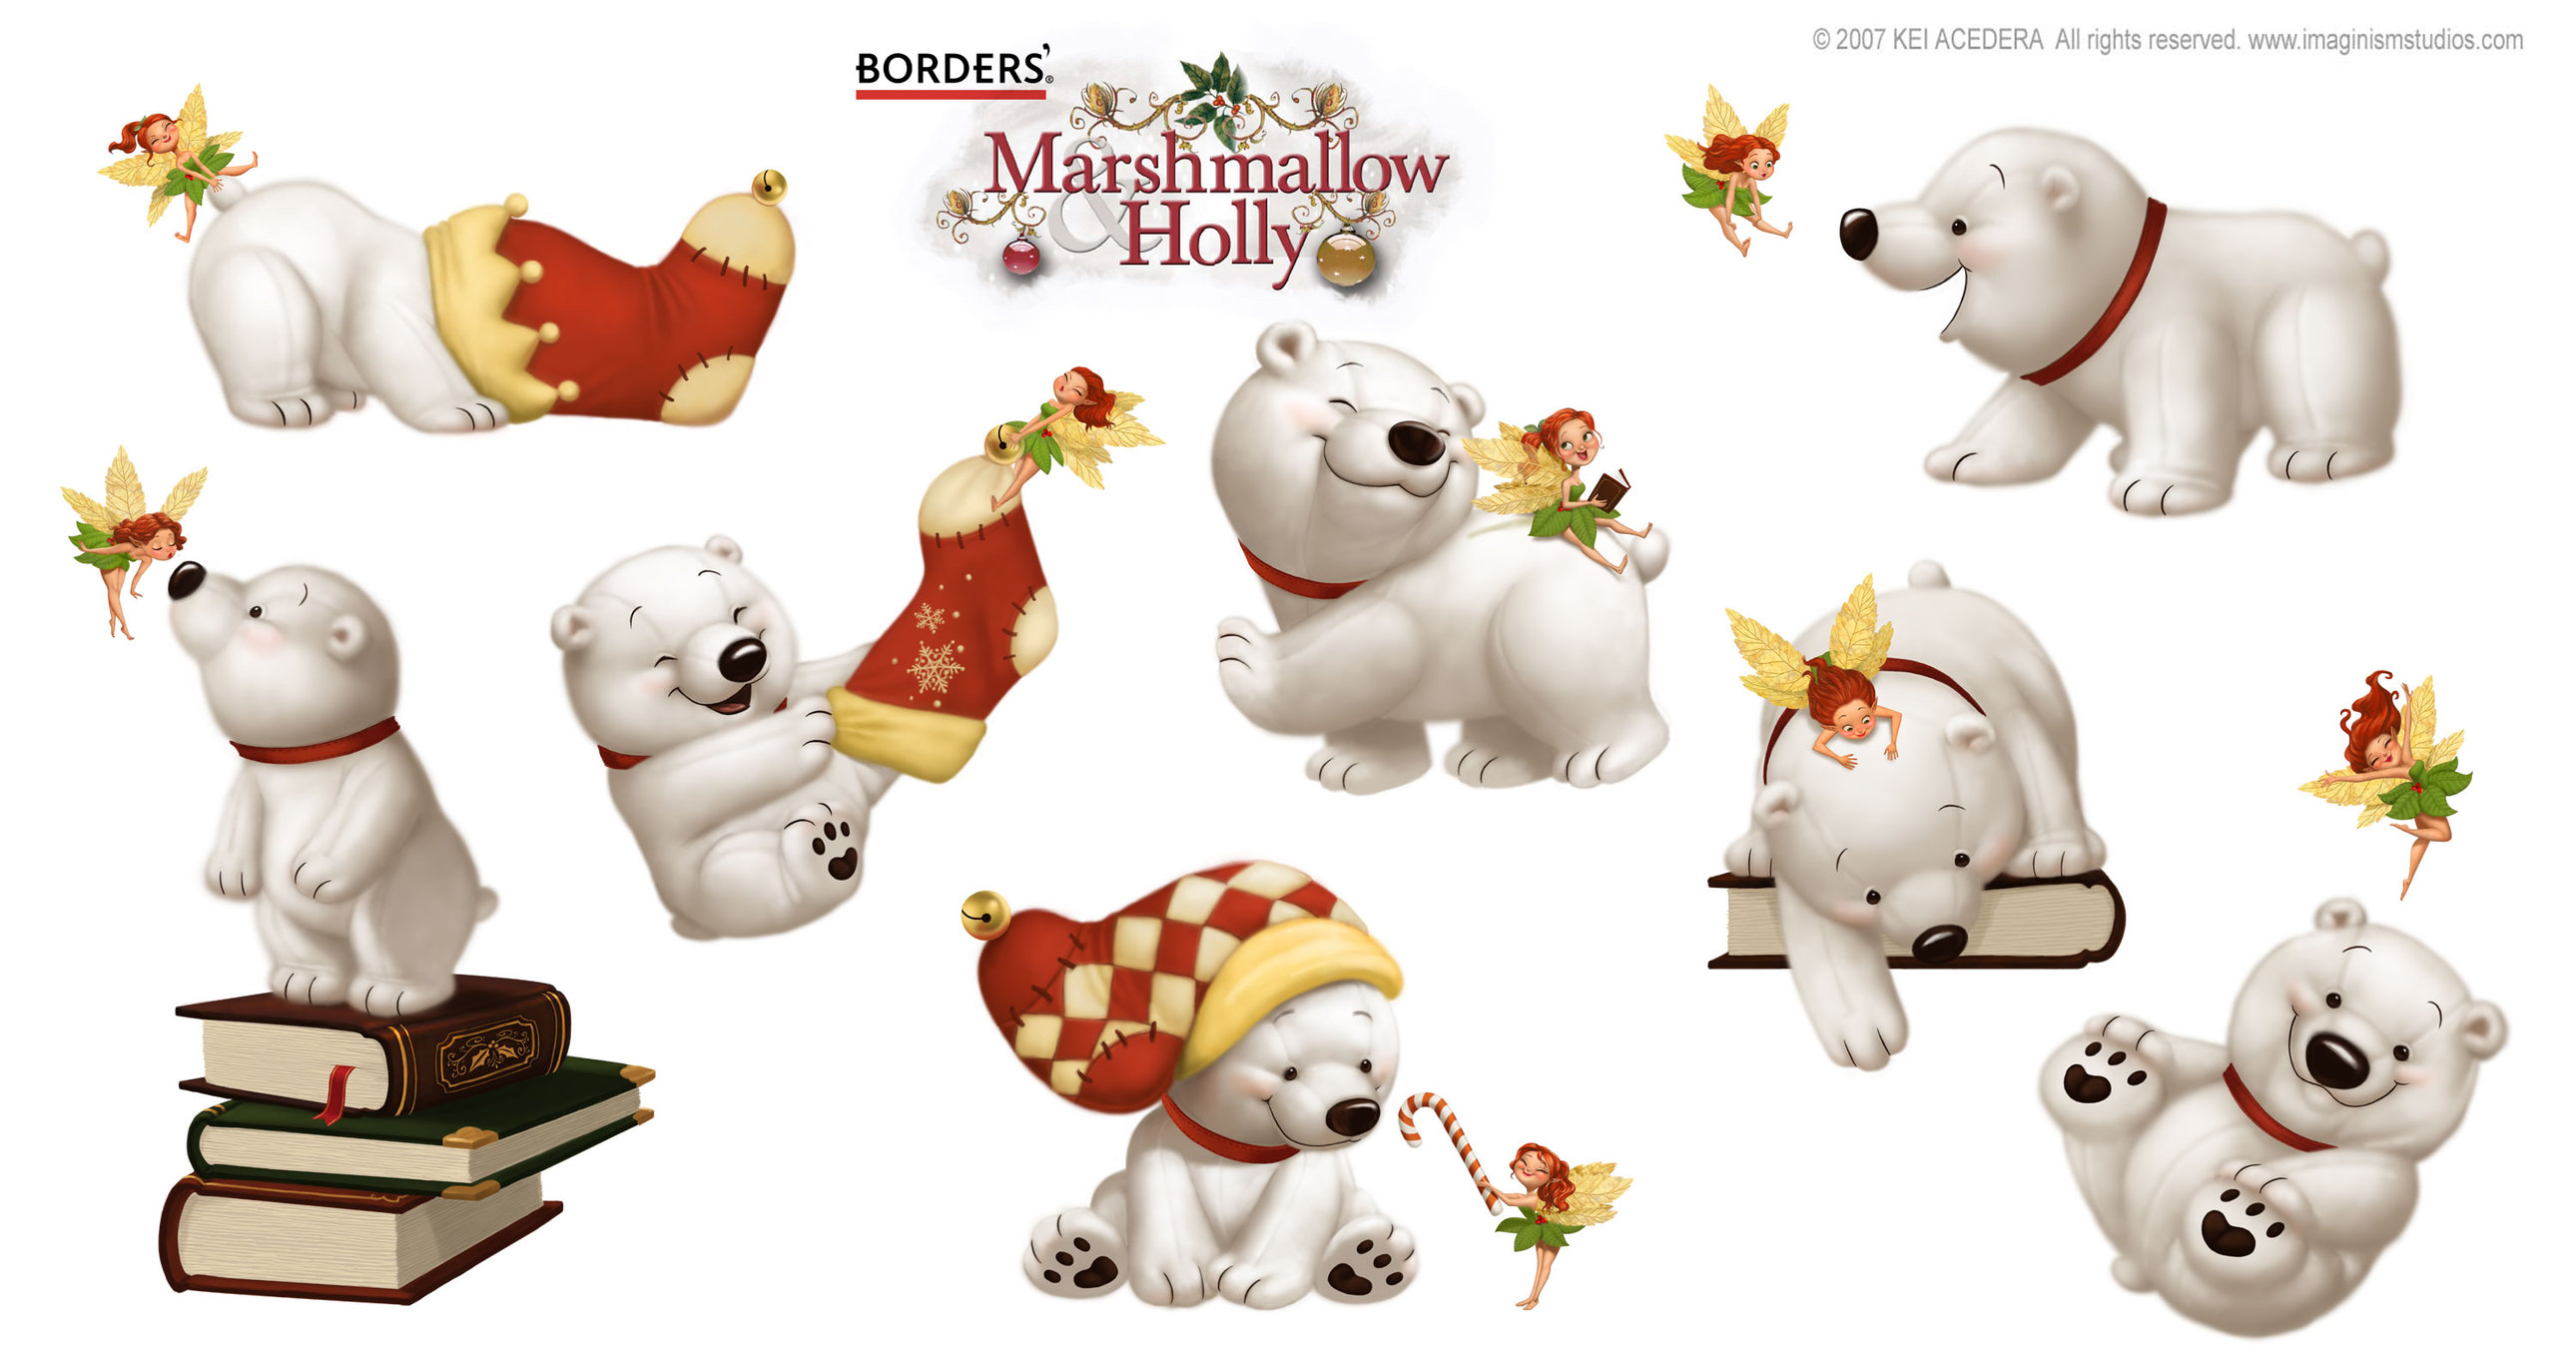 Marshmellow clipart cartoon Imaginism Big imaginism on by